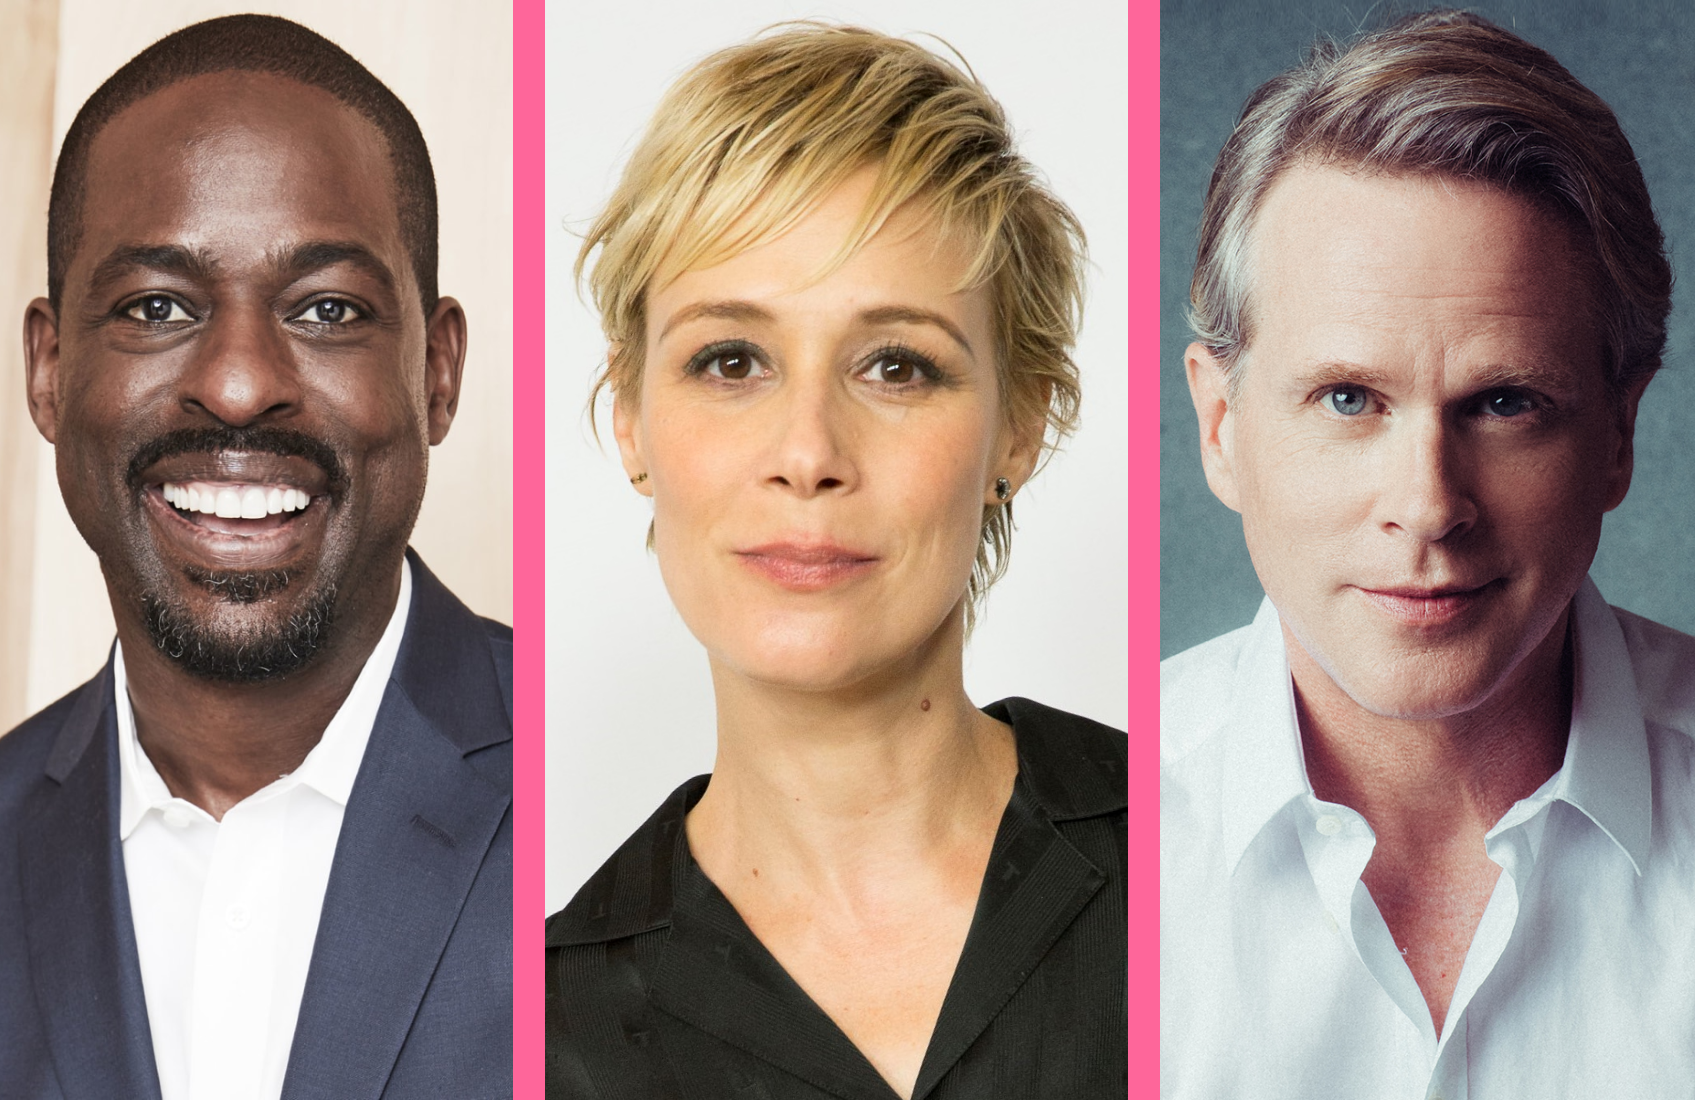 Sterling K. Brown, Liza Weil and Cary Elwes are among the new additions for Season 3 of The Marvelous Mrs. Maisel (Amazon)